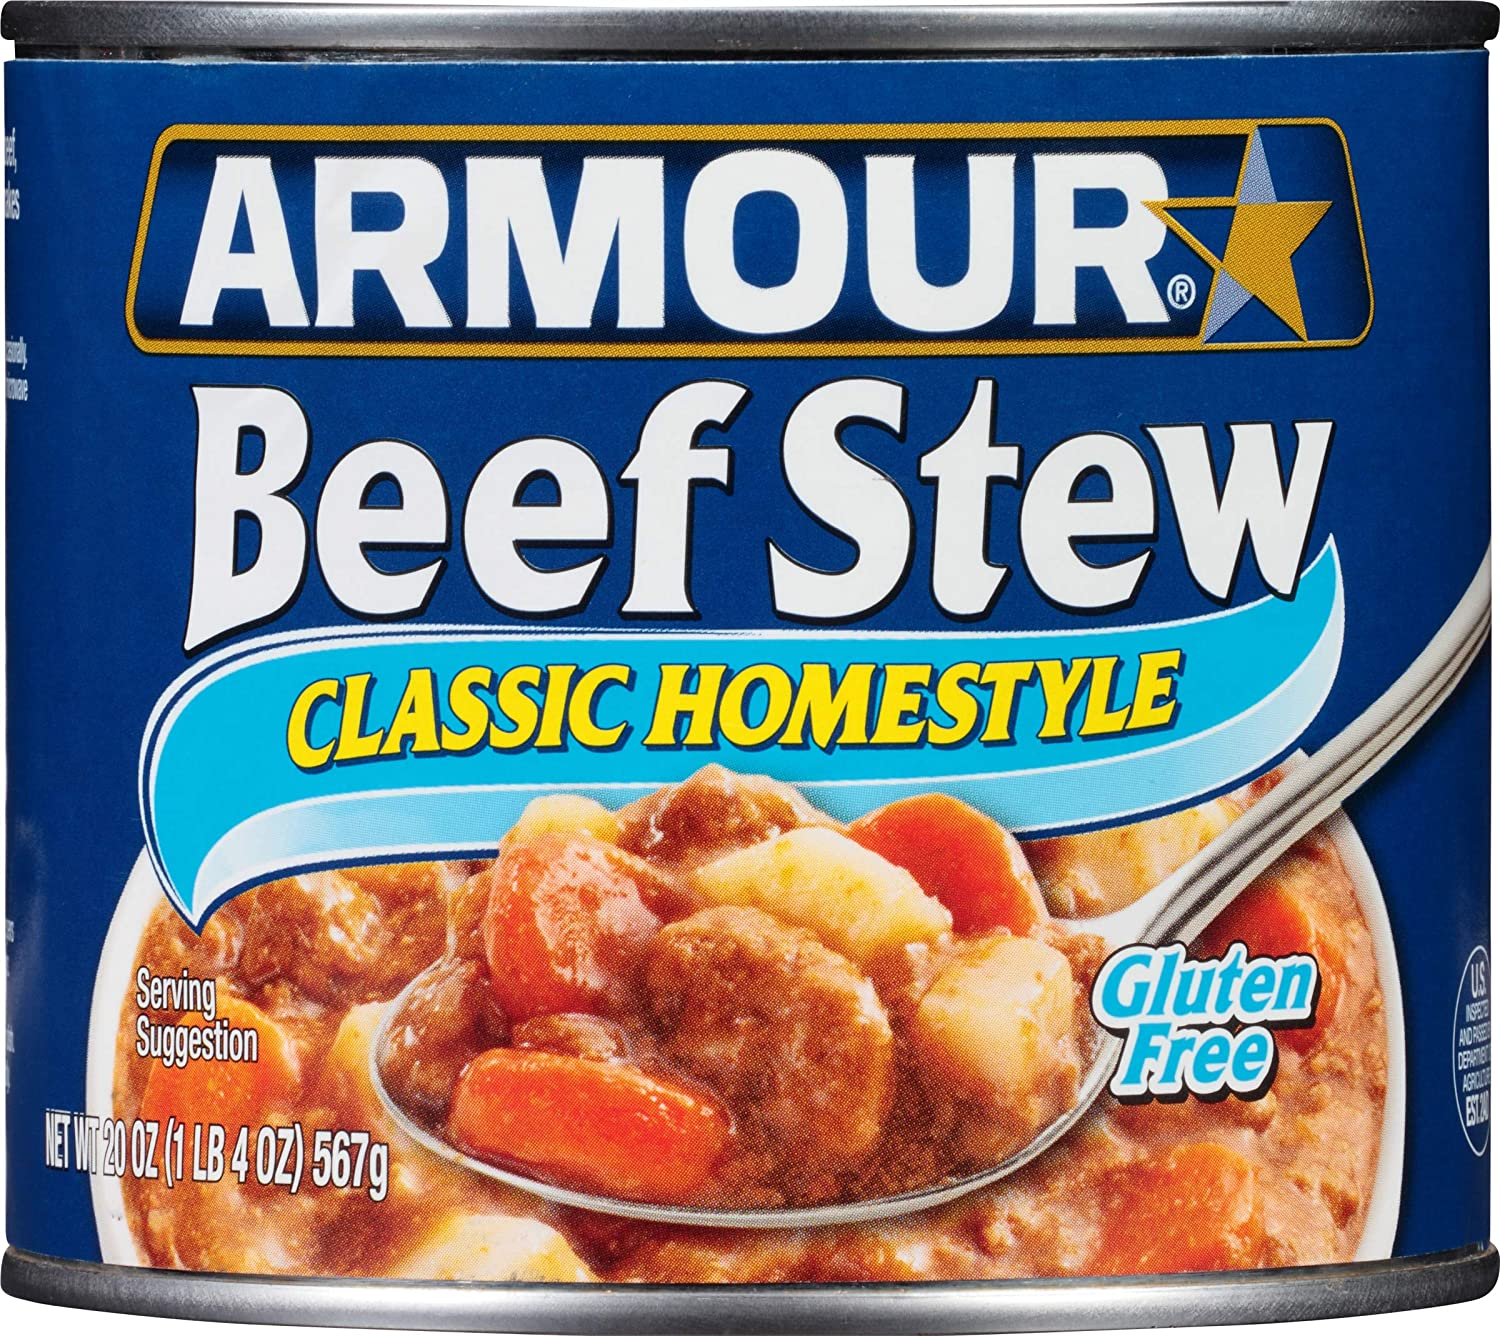 Armour Star Classic Homestyle Beef Stew, Canned Food, 12 - 20 OZ Cans